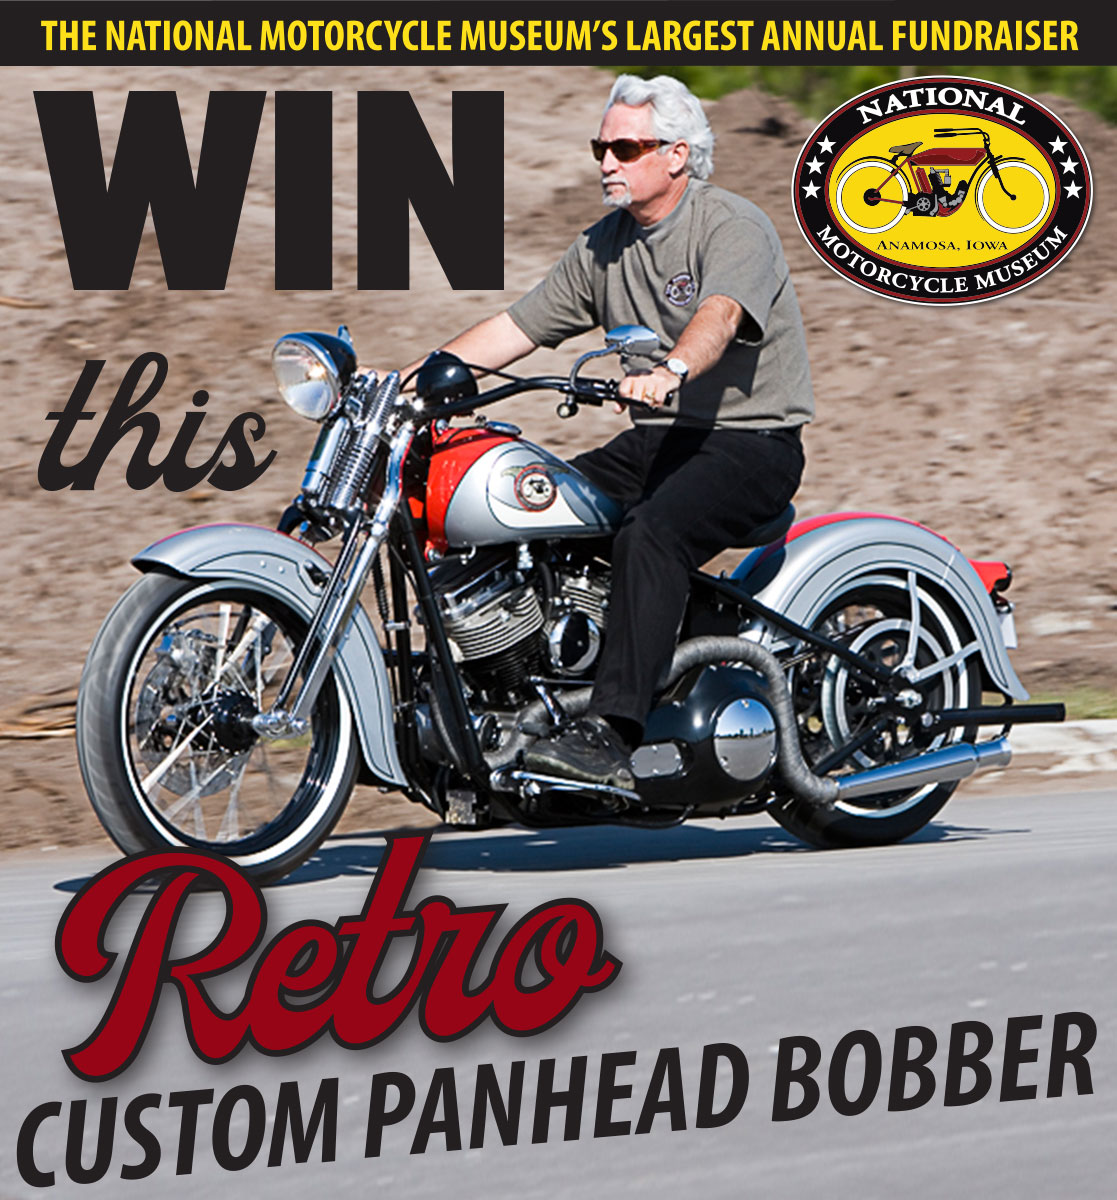 Win this Retro Custom Panhead Bobber motorcycle